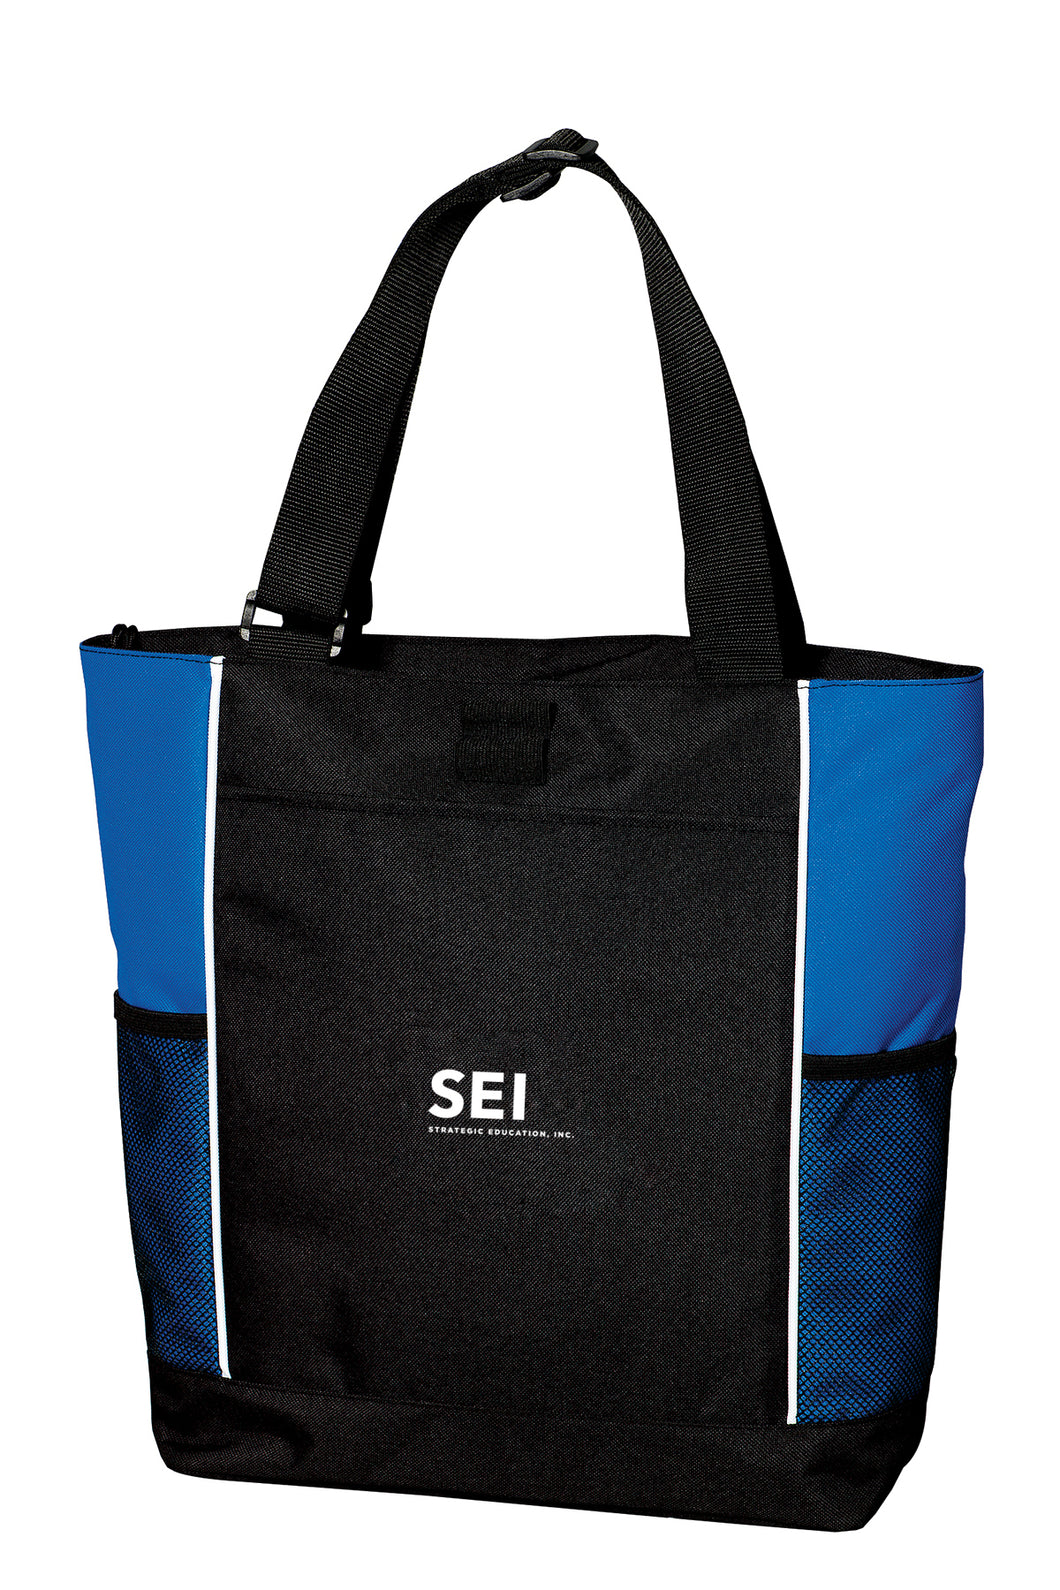 SEI -Port Authority Panel Tote - Black/Royal